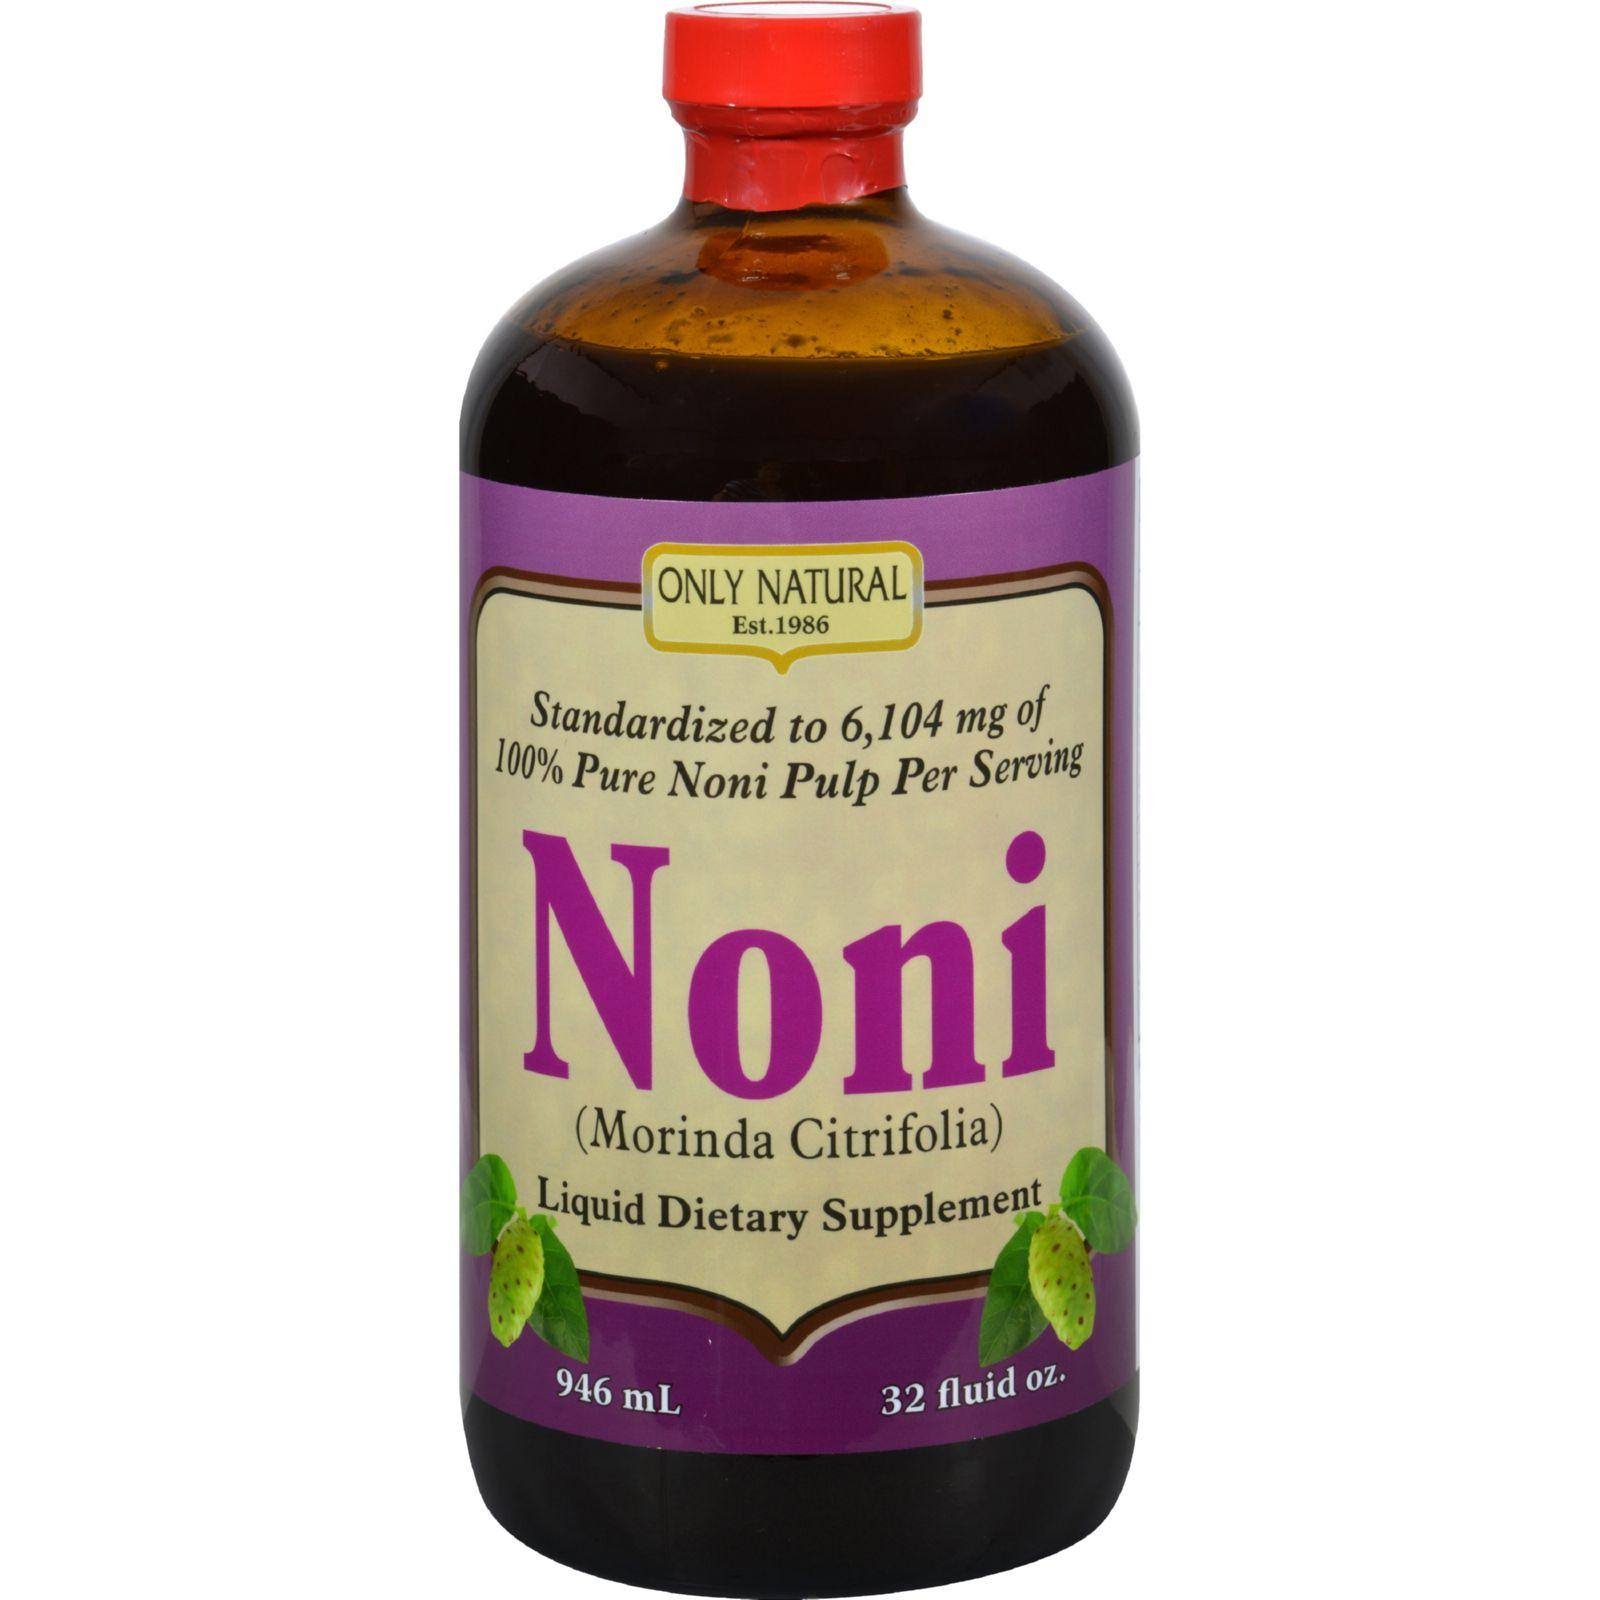 Only Natural Noni Liquid Dietary Supplement - 945ml